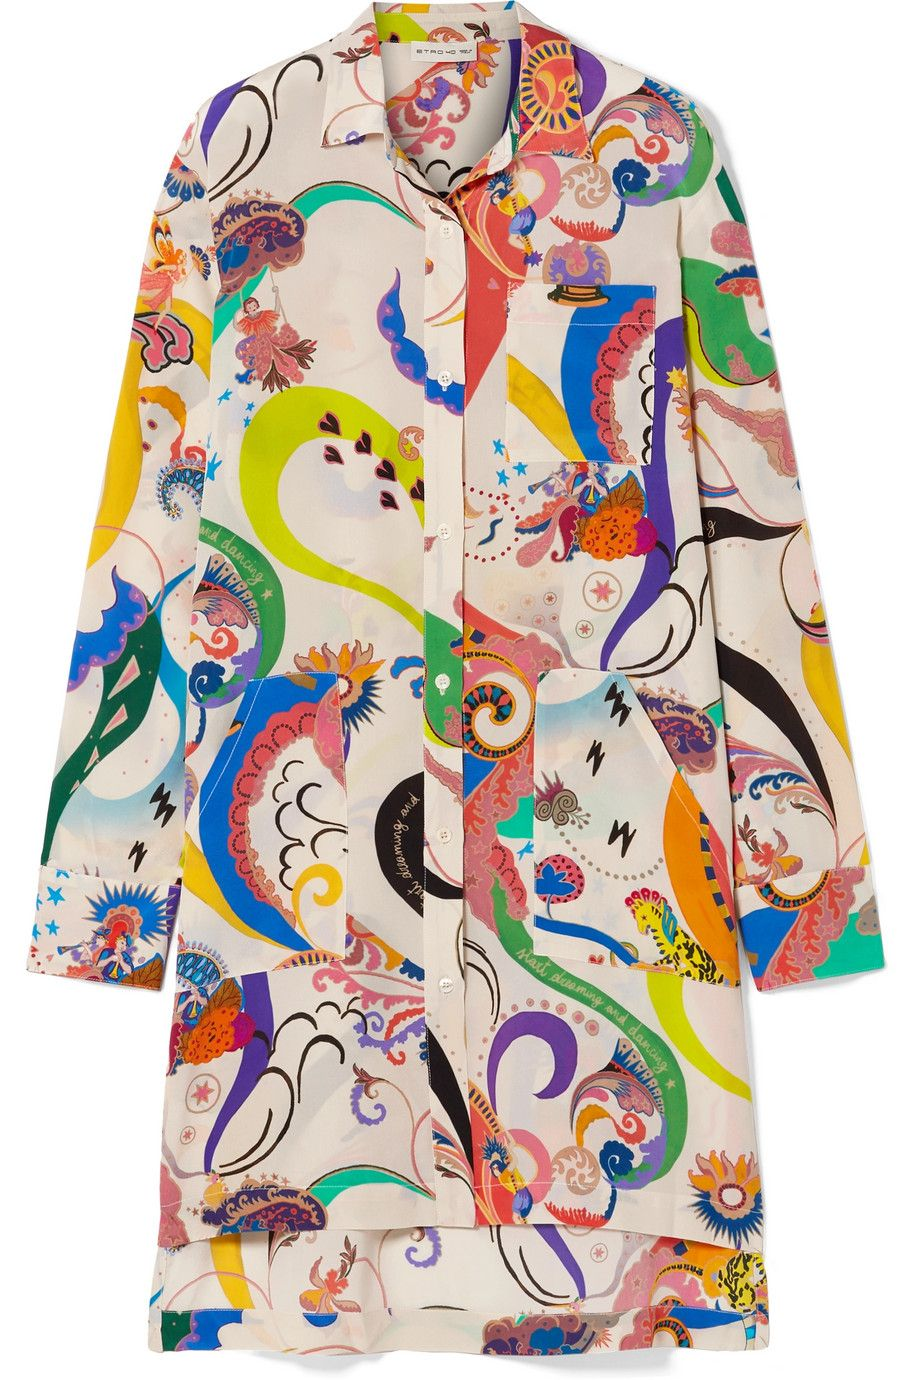 4602d6cab6eff5 Etro - Oversized printed silk crepe de chine shirt in 2019 | Gucci ...